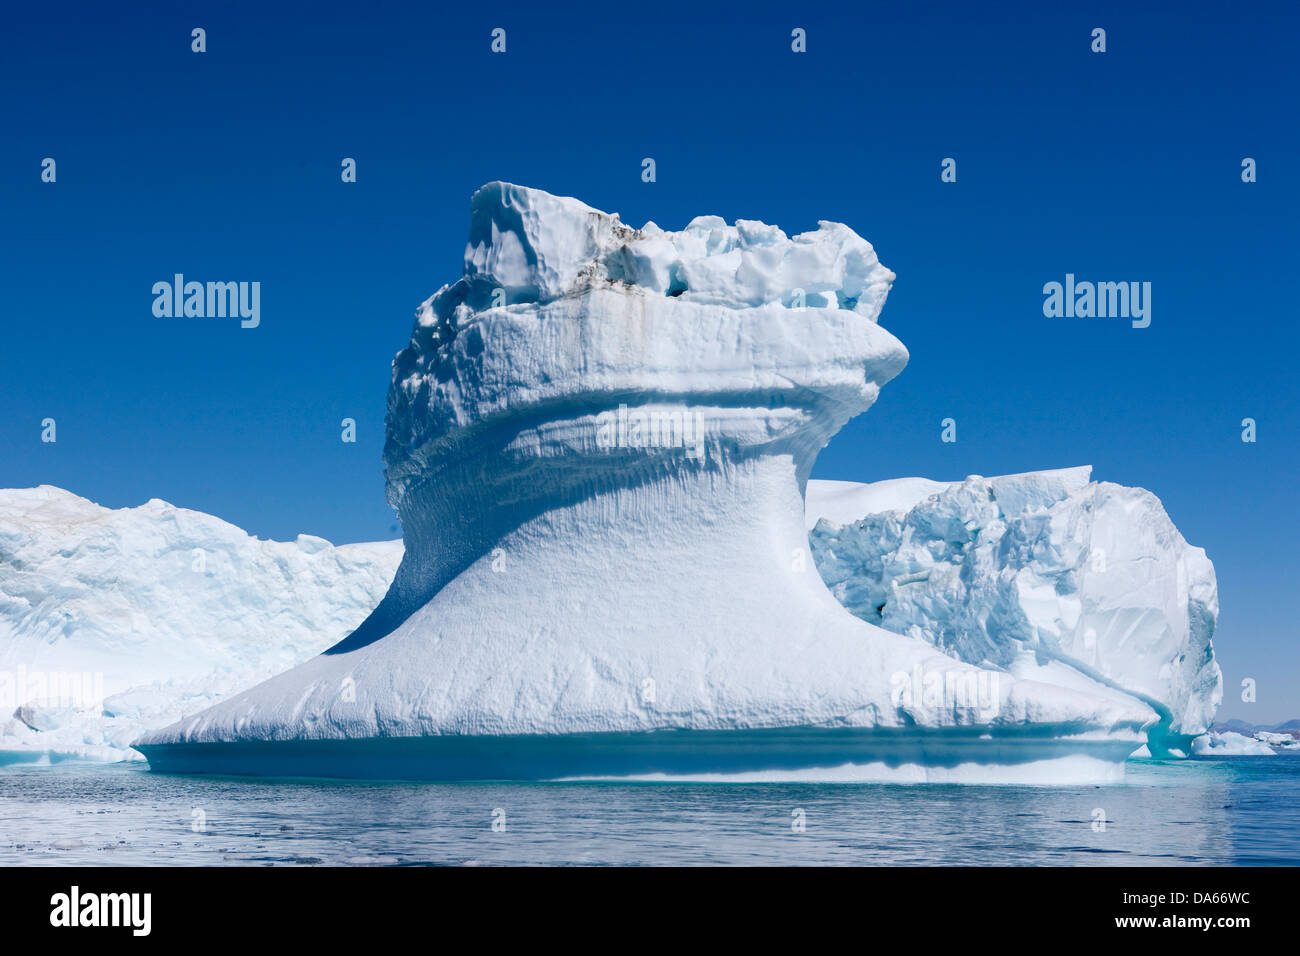 Icebergs, Greenland, East Greenland, ice, iceberg, Tassiilaq, nature, formation, group, white, blue, cold, - Stock Image